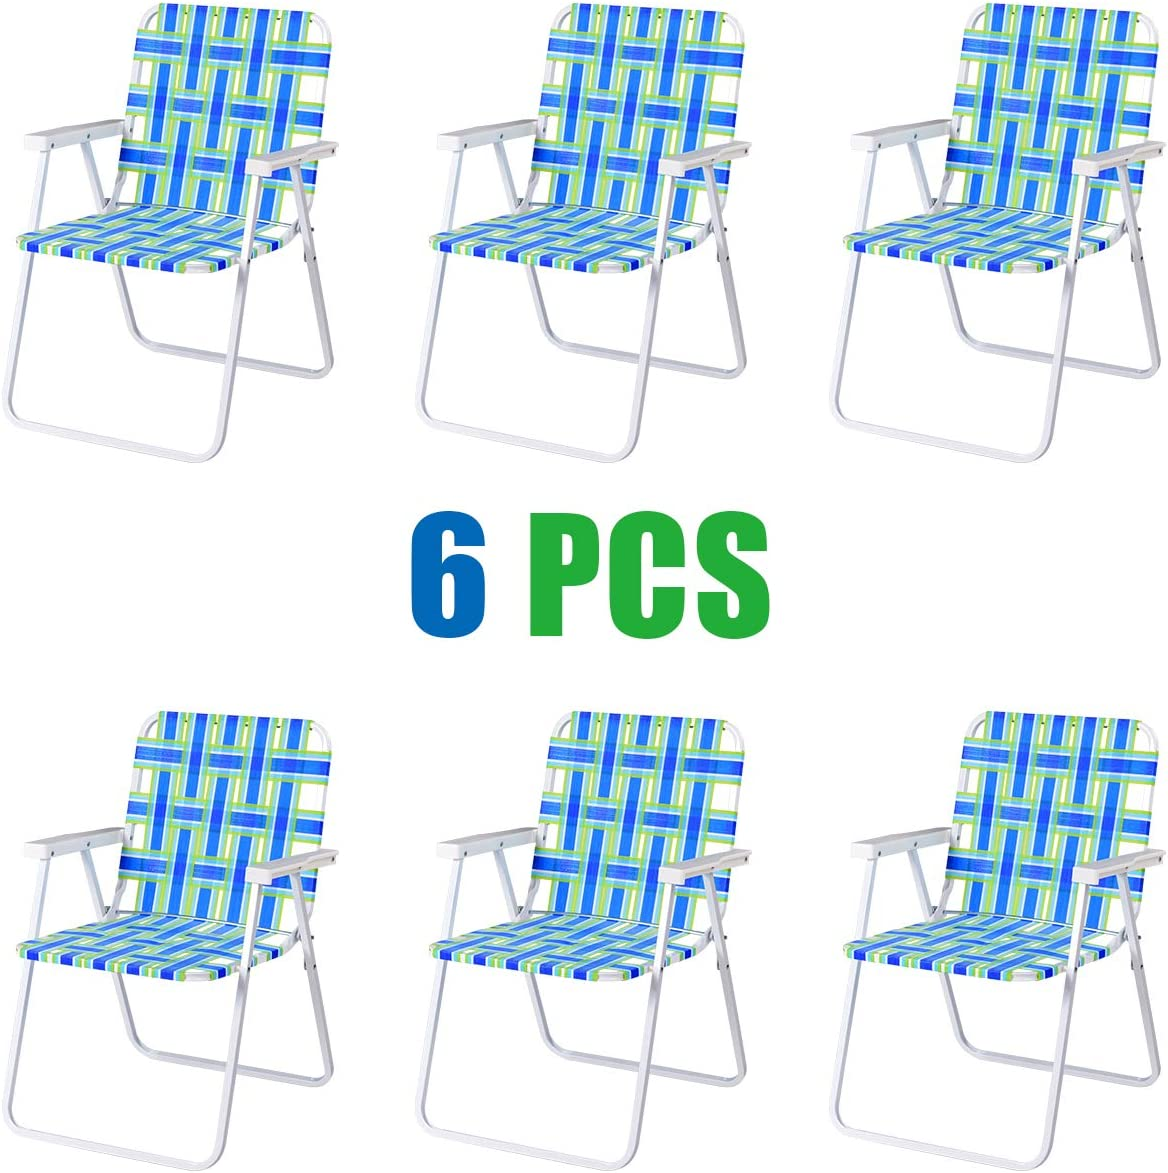 GYMAX Patio Folding Web Chair Set, 6 Pack Portable Lightweight Indoor Outdoor Dining Chair for Patio, Garden, Bay, Yard, Lawn, Heavy Duty Chair Set Blue Green